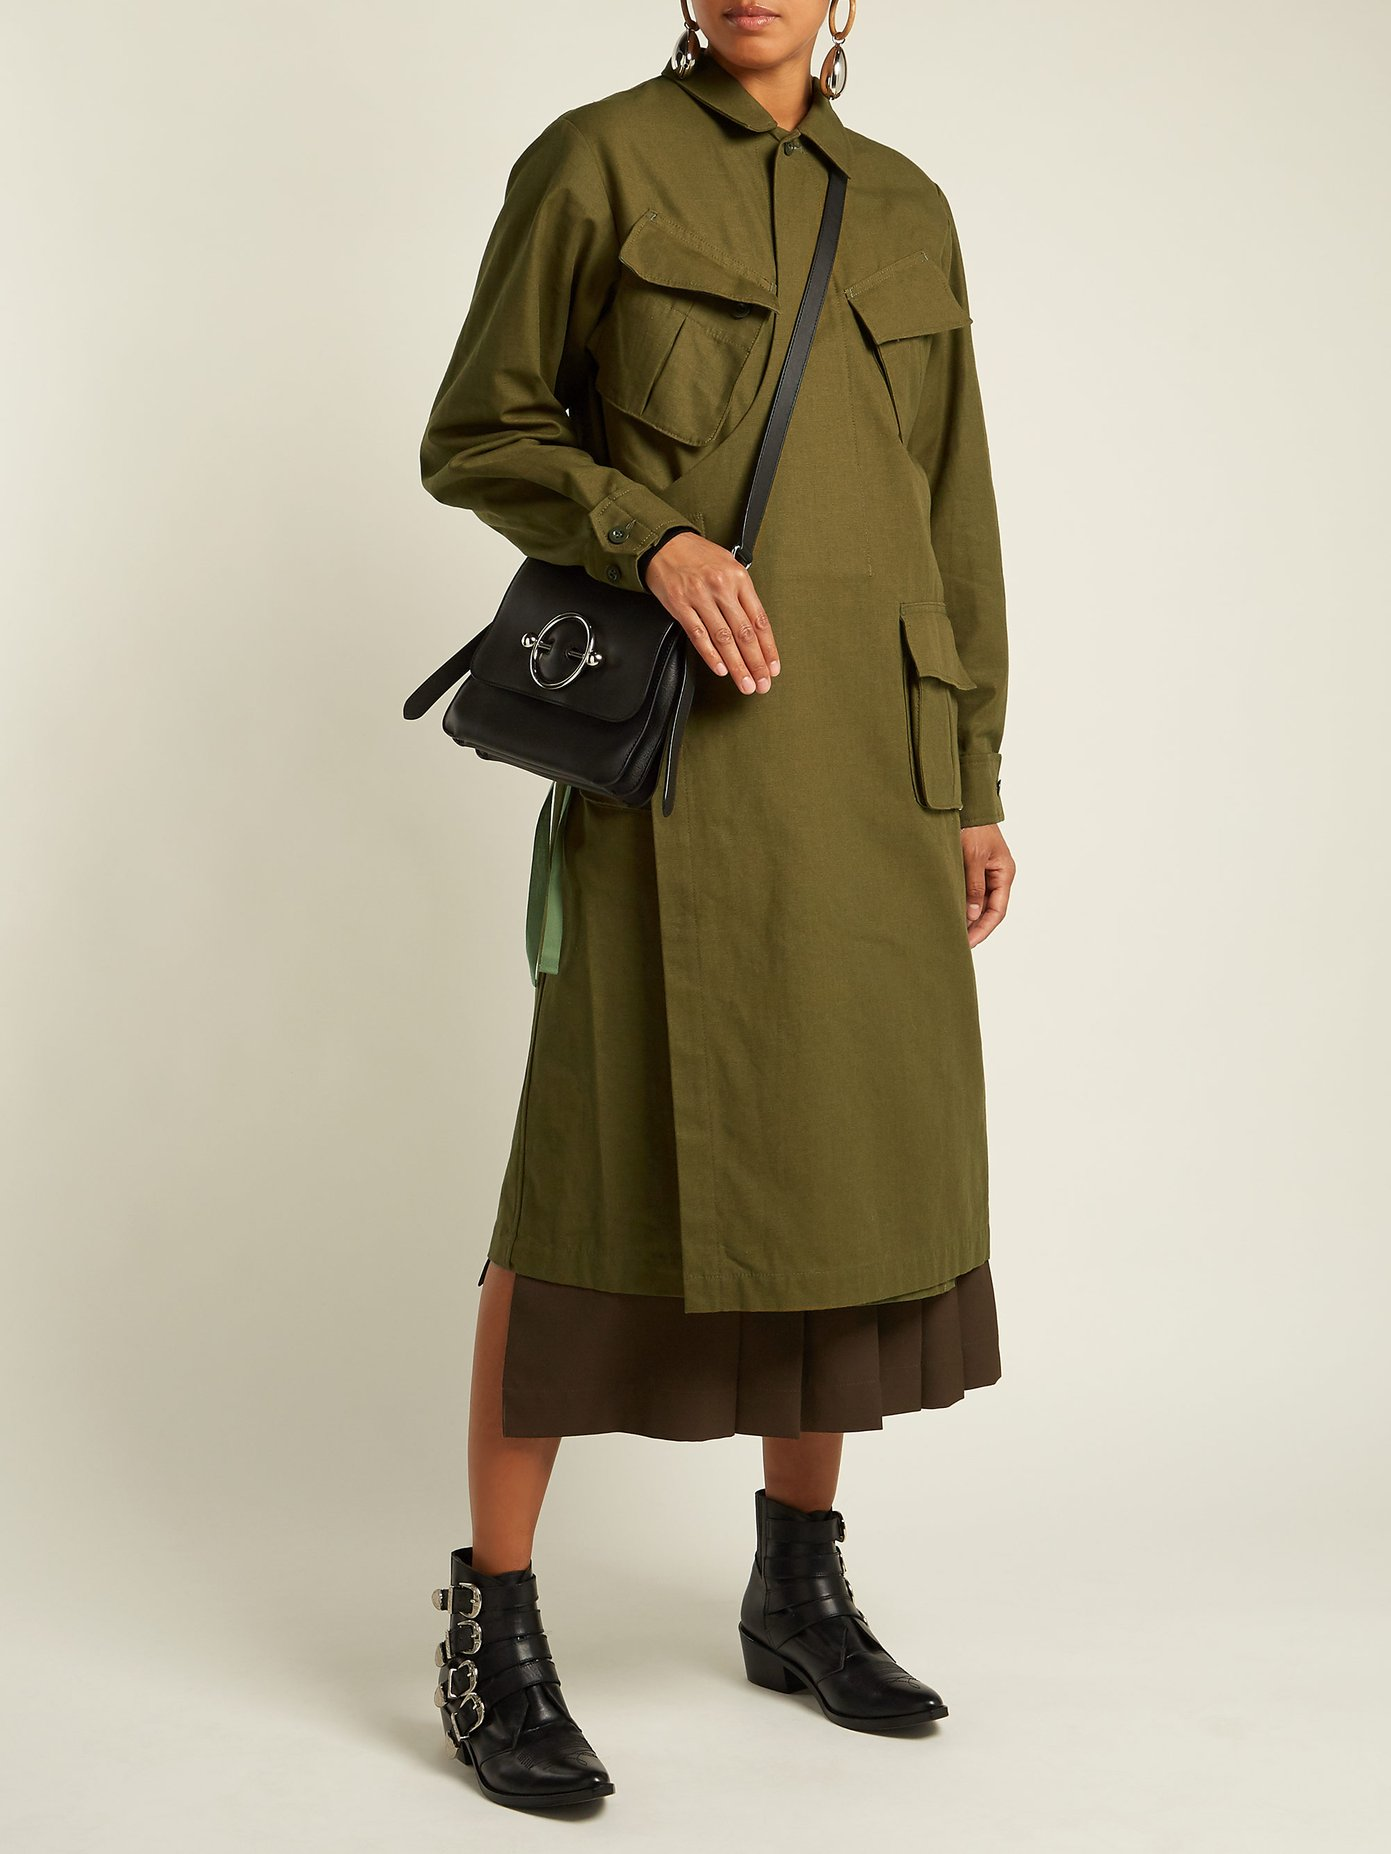 TOGA / WRAP-FRONT COTTON COAT $568 - available at Matchesfashion